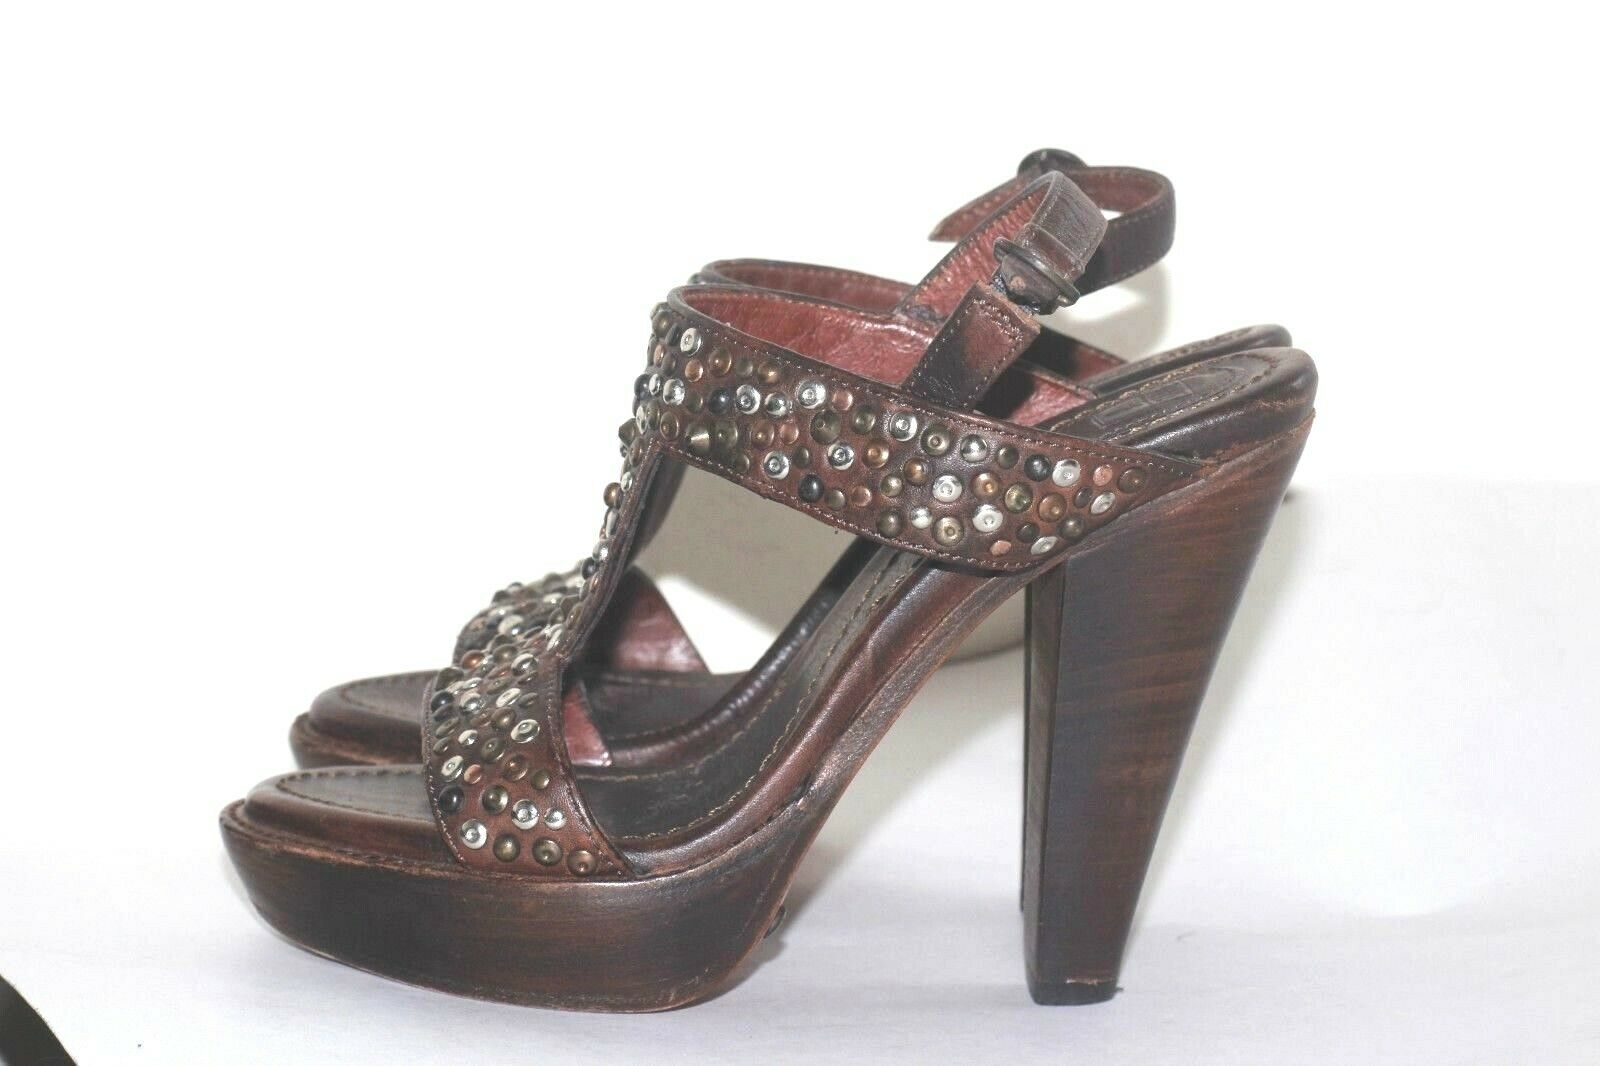 FRYE donna Studded  Marronee Leather Leather Leather Sandals Sz 6B 48a41b